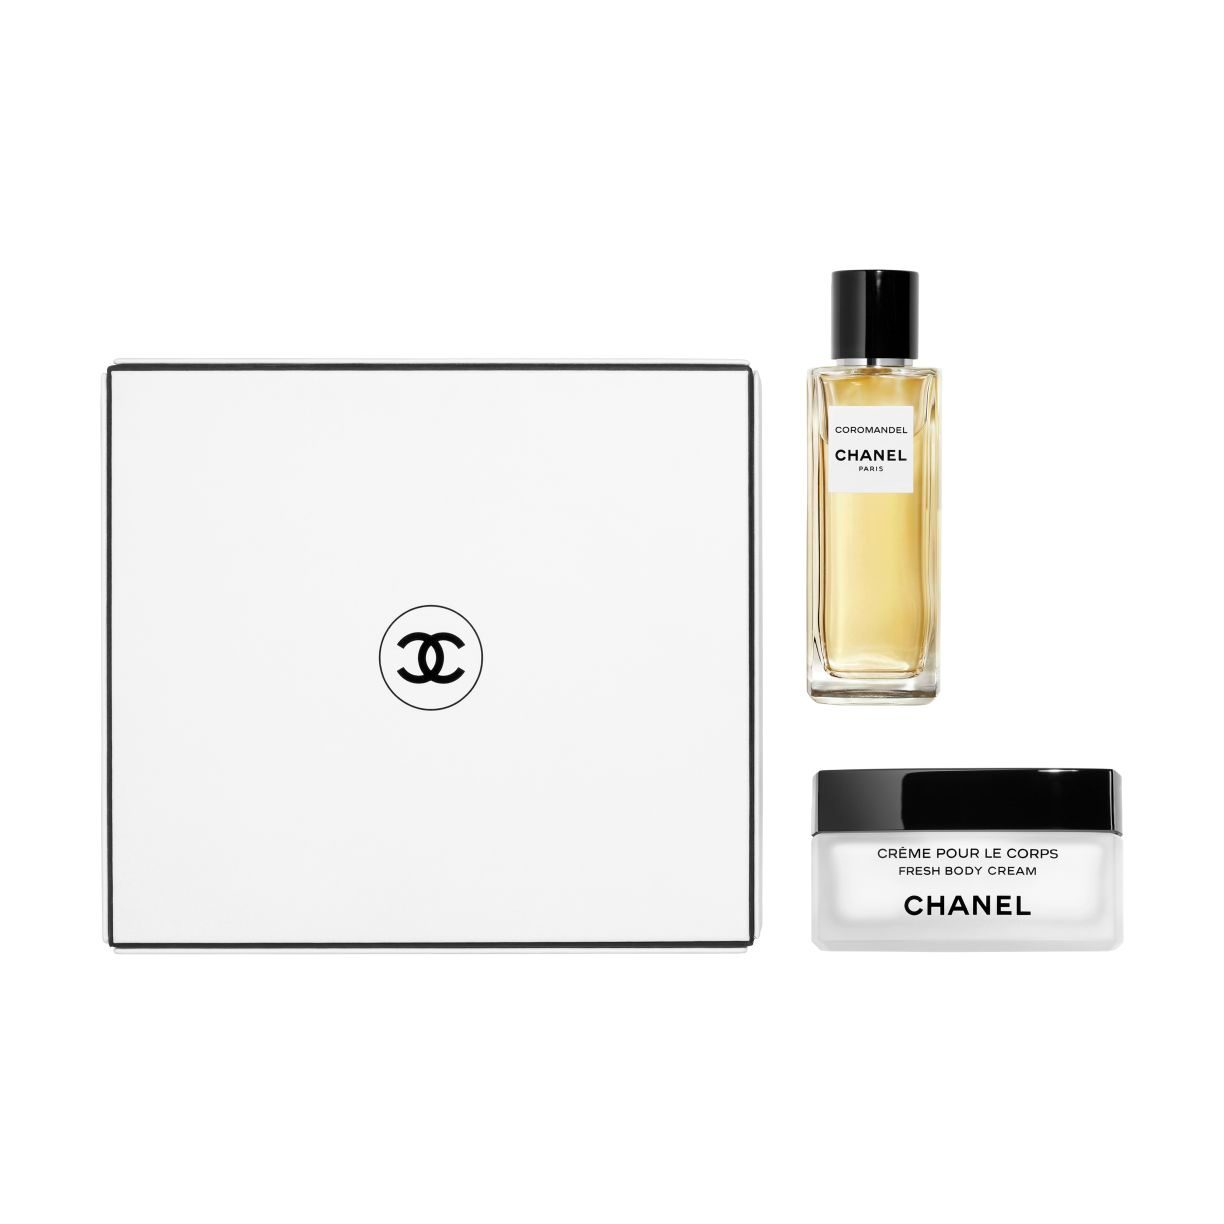 LES EXCLUSIFS DE CHANEL COROMANDEL EAU DE PARFUM 75 ML AND FRESH BODY CREAM COFFRET 1pce